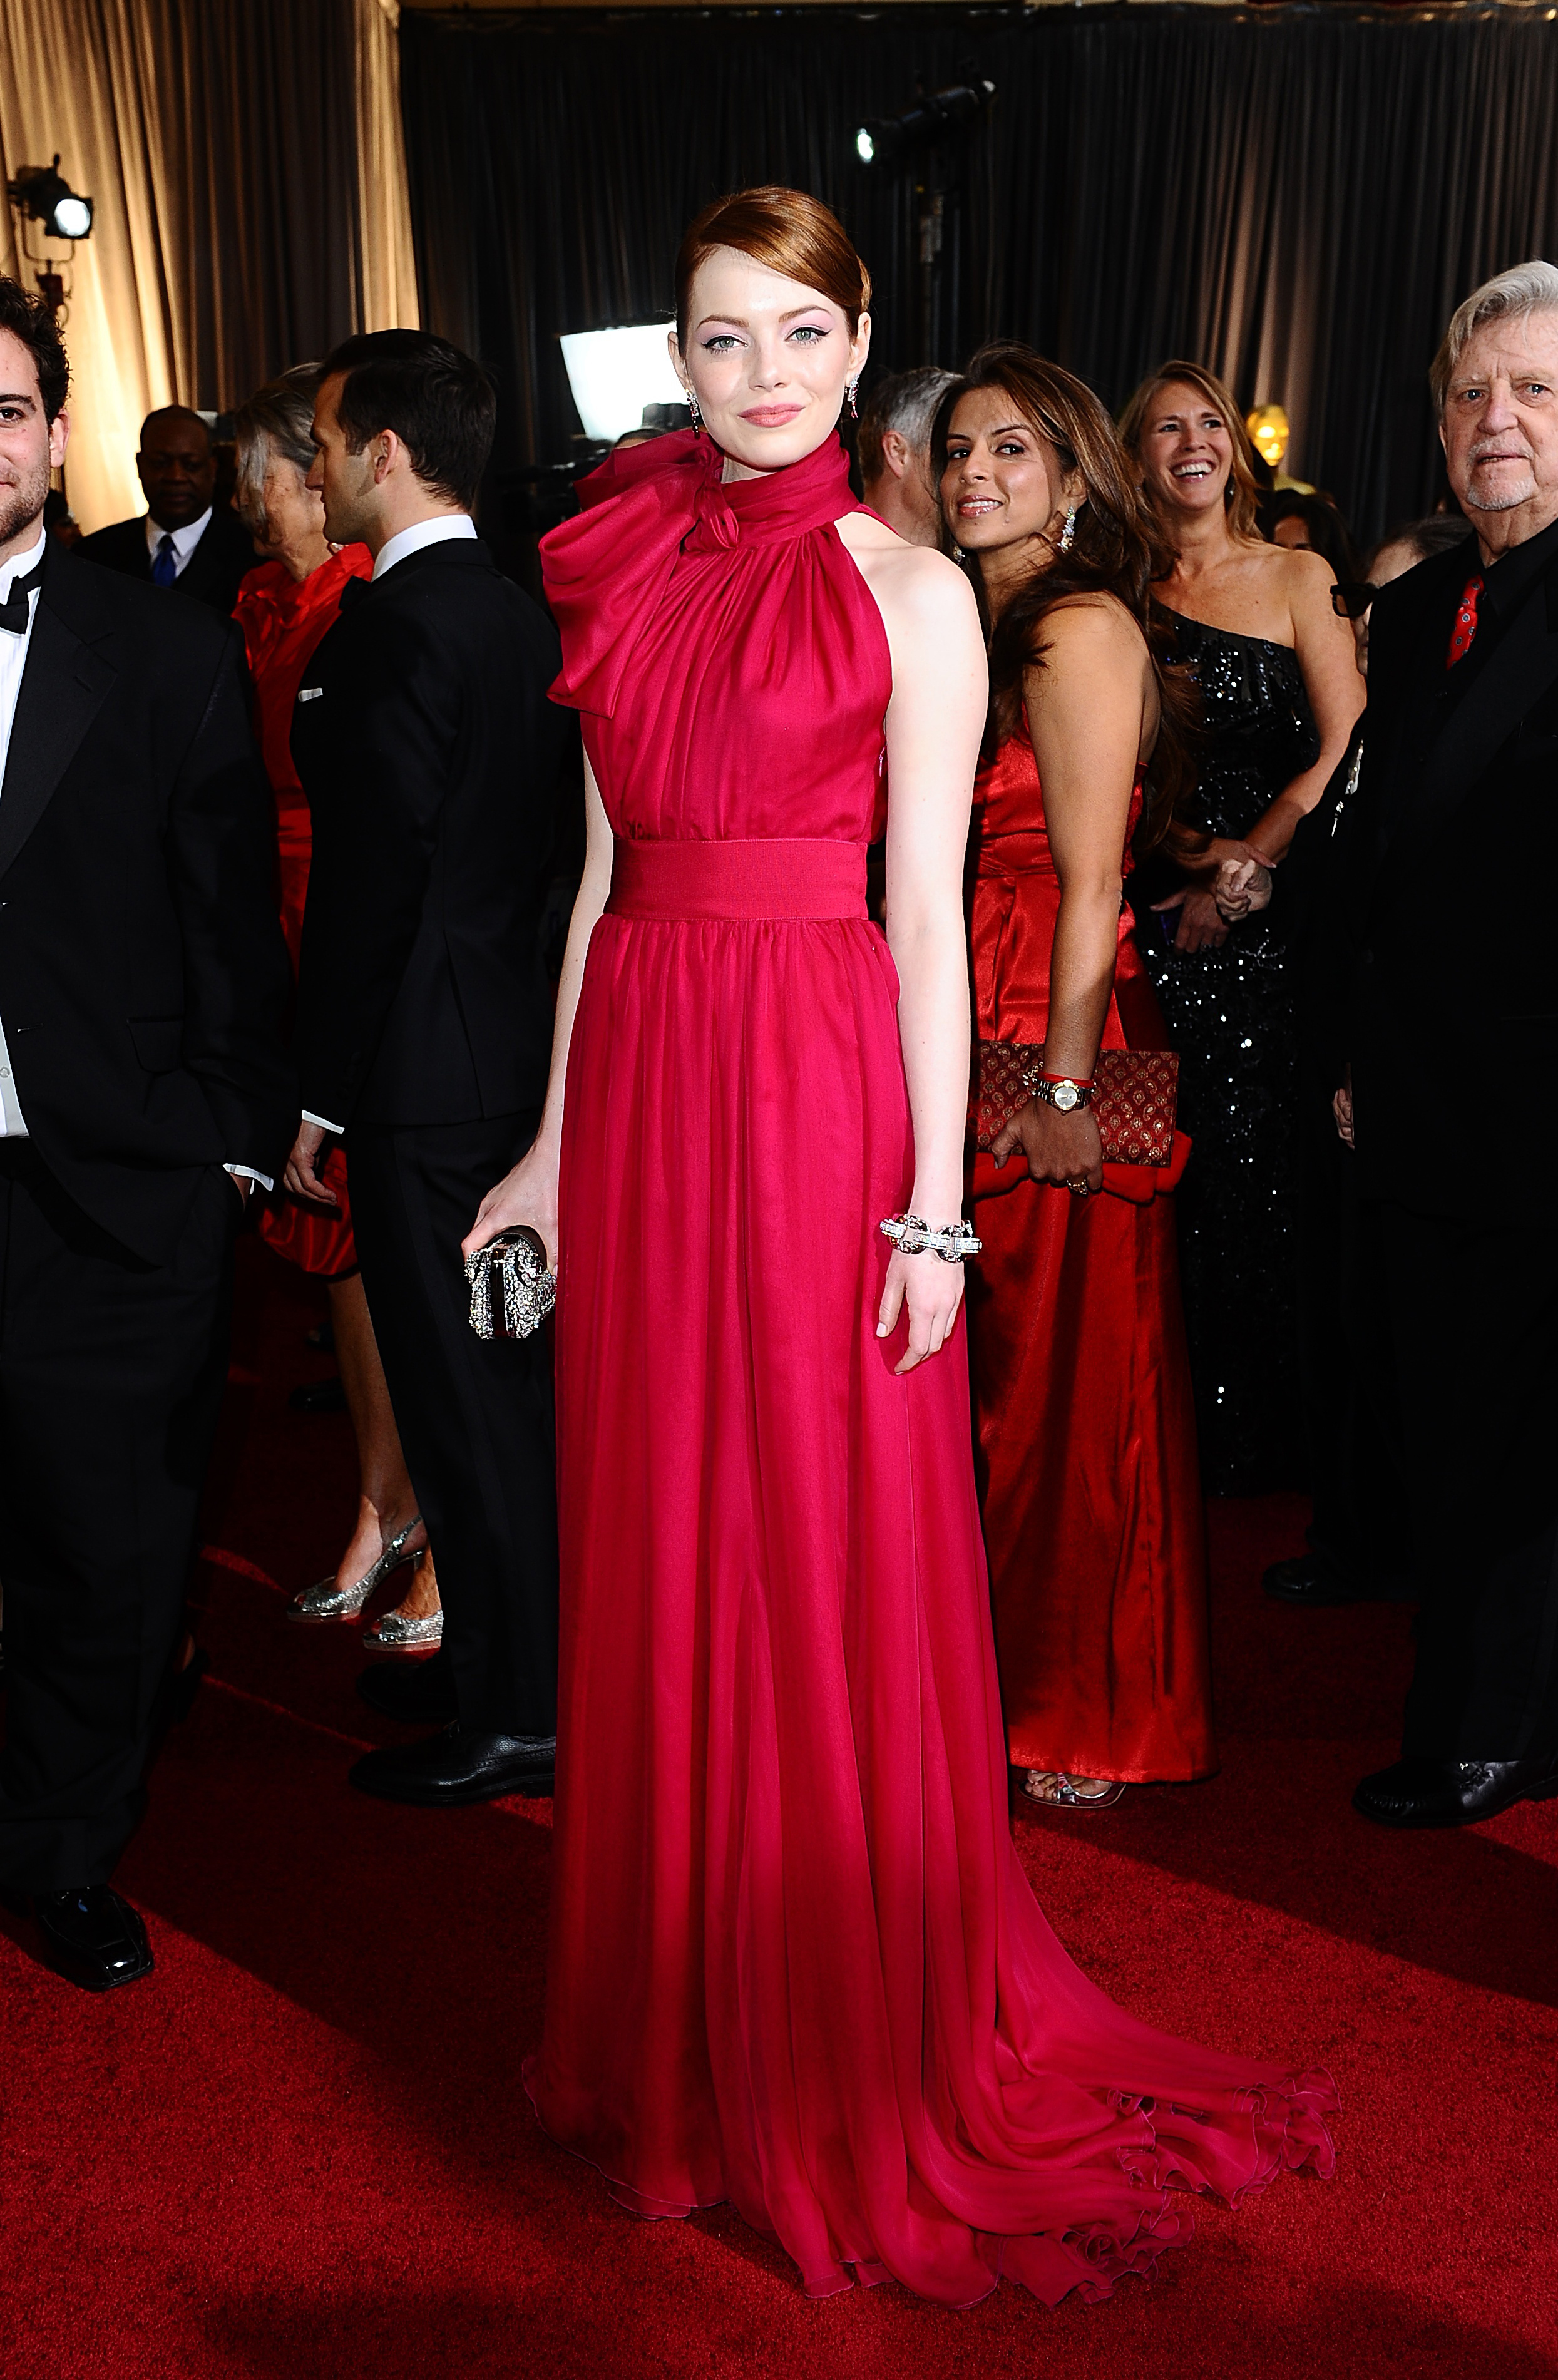 Emma Stone arriving for the 84th Academy Awards at the Kodak Theatre, Los Angeles.